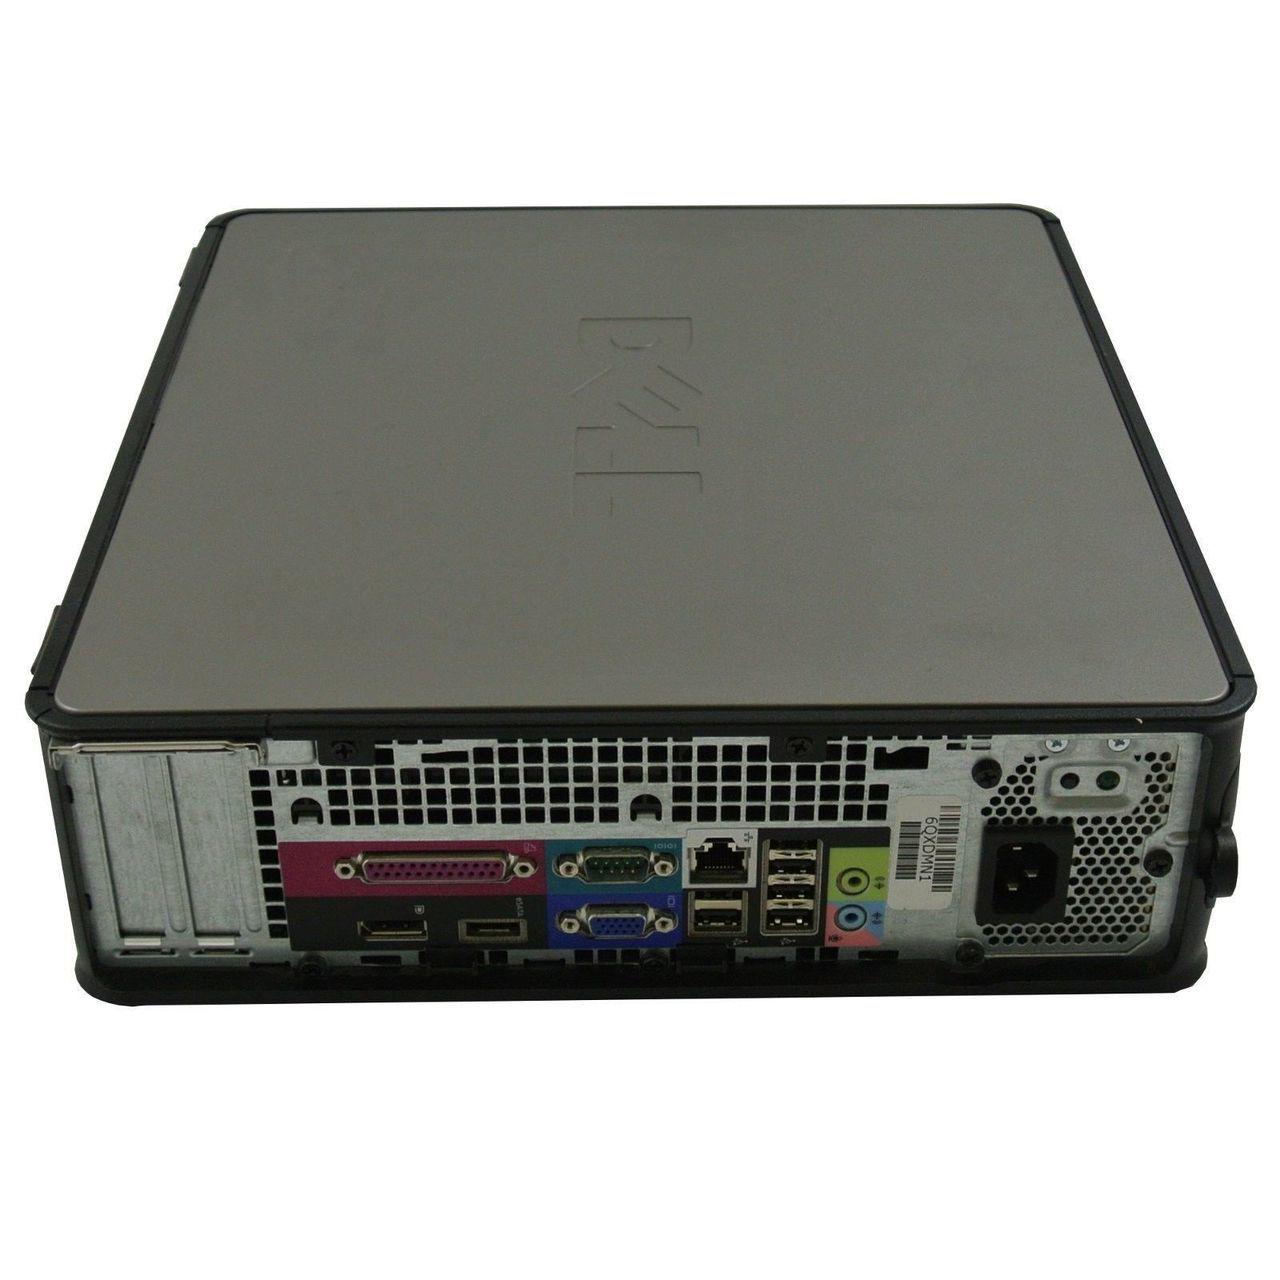 Dell OptiPlex 780 DT Core 2 Duo 3 GHz - HDD 160 Go RAM 16 Go